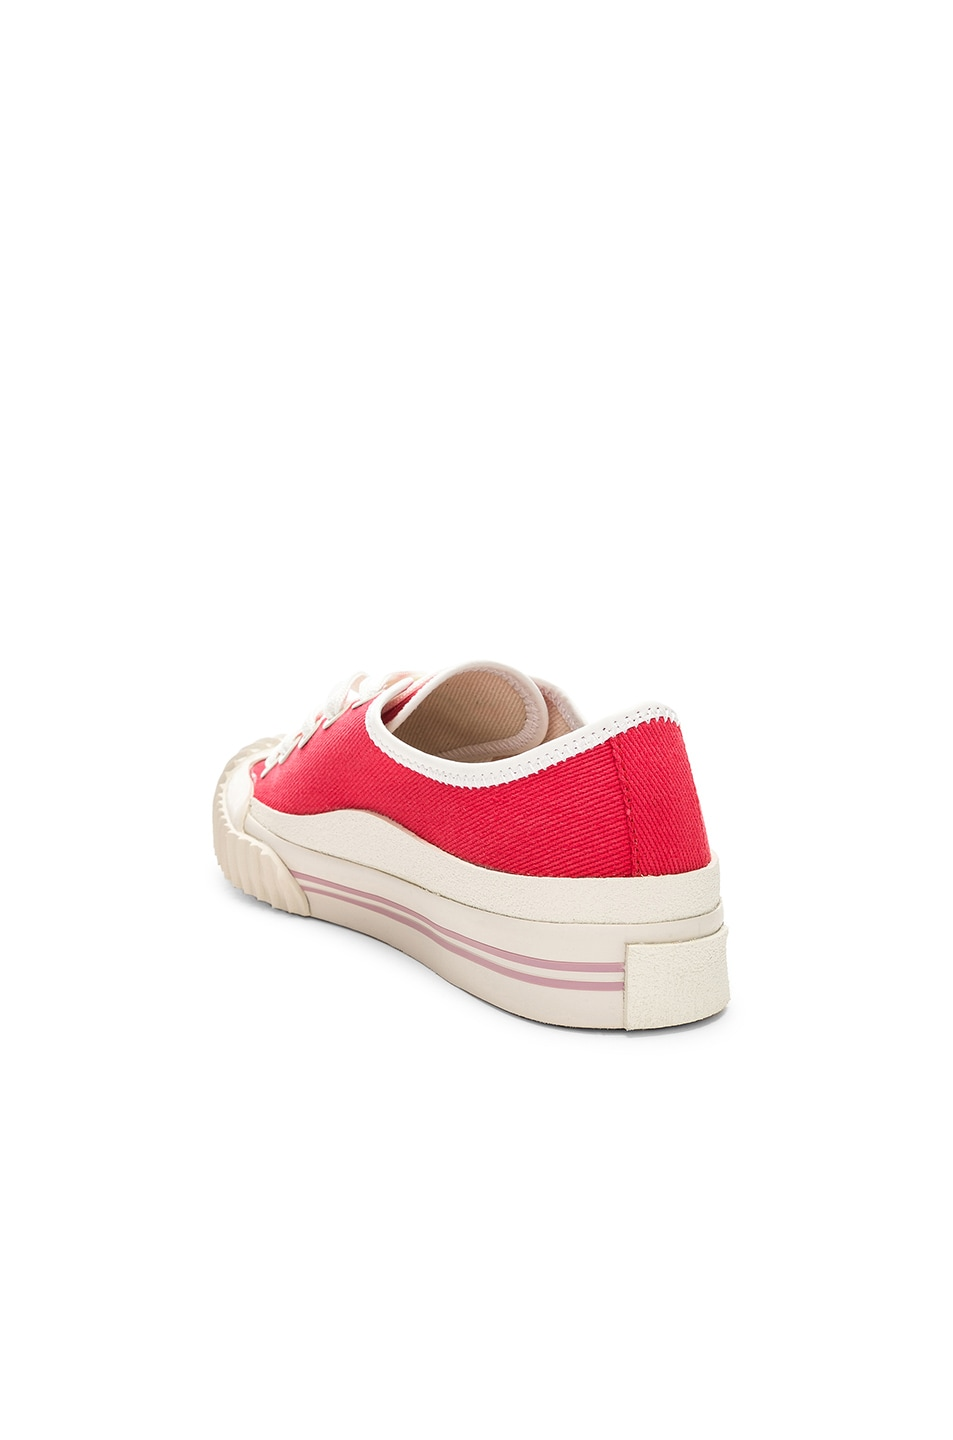 Image 3 of Acne Studios x Bla Konst Sneaker in Coral Red